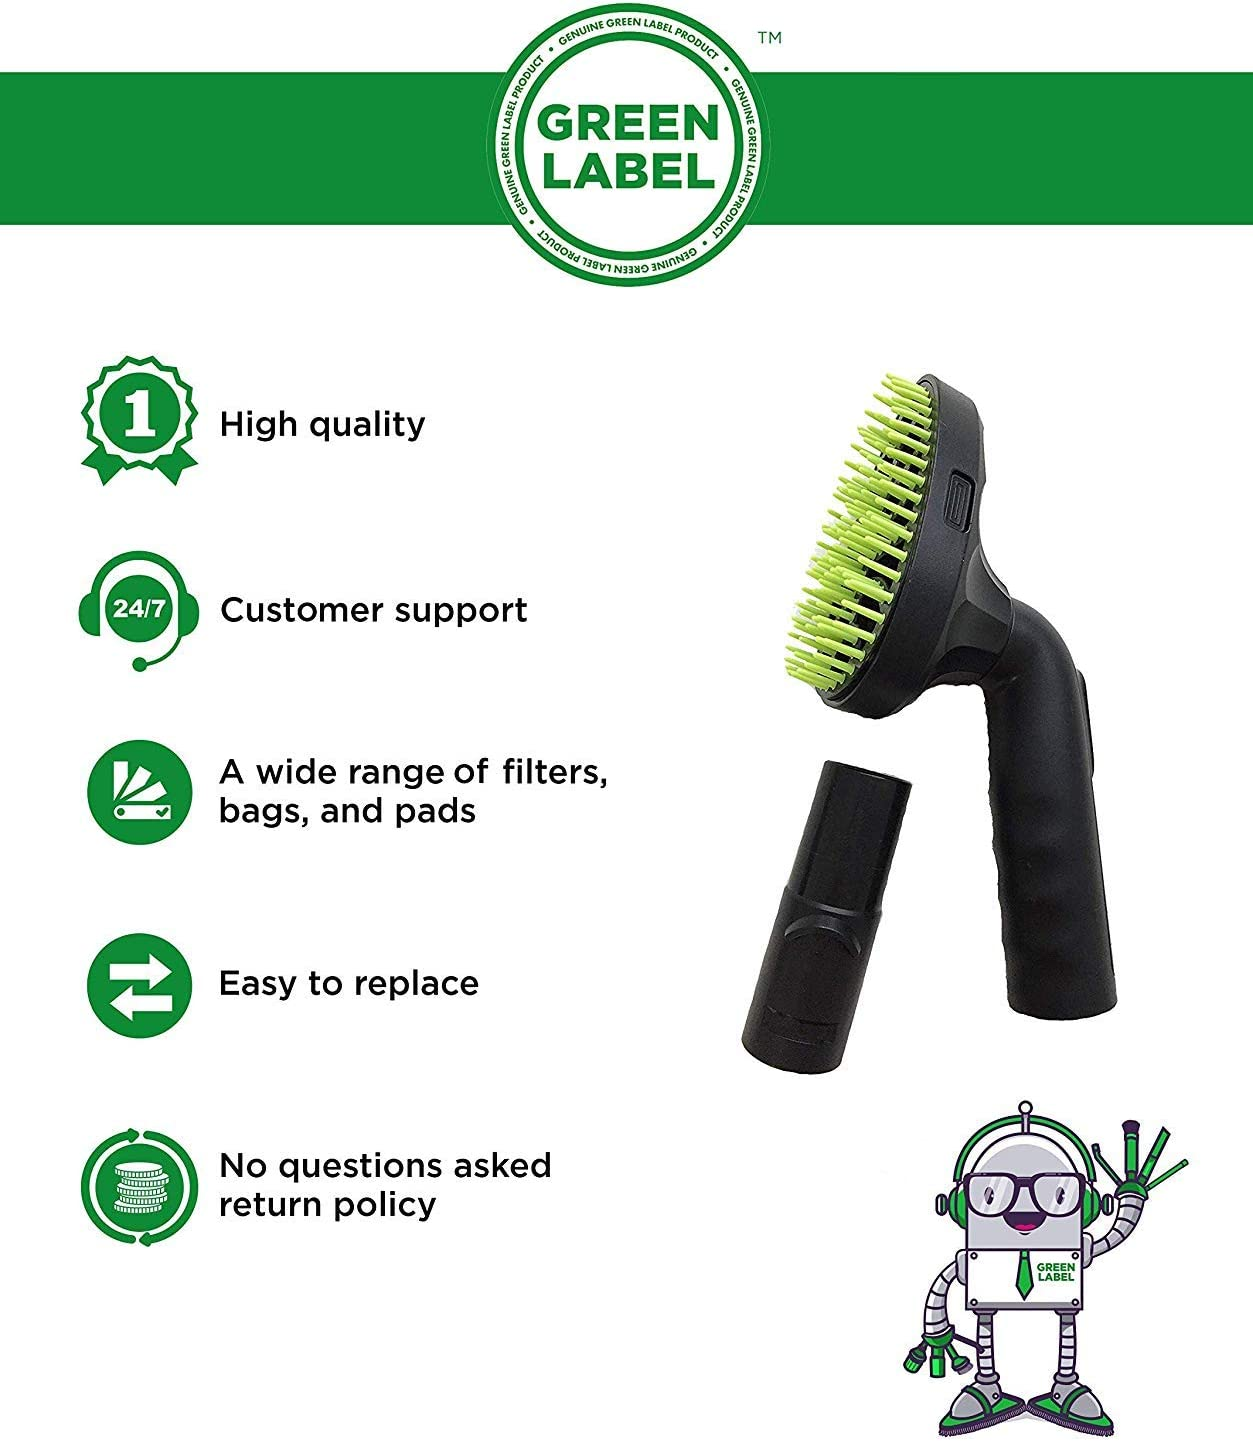 Pet Hair Brush for Dyson. Vacuum Cleaner Nozzle Attachment Grooming Tool (with Dyson Adapter). Genuine Green Label Product